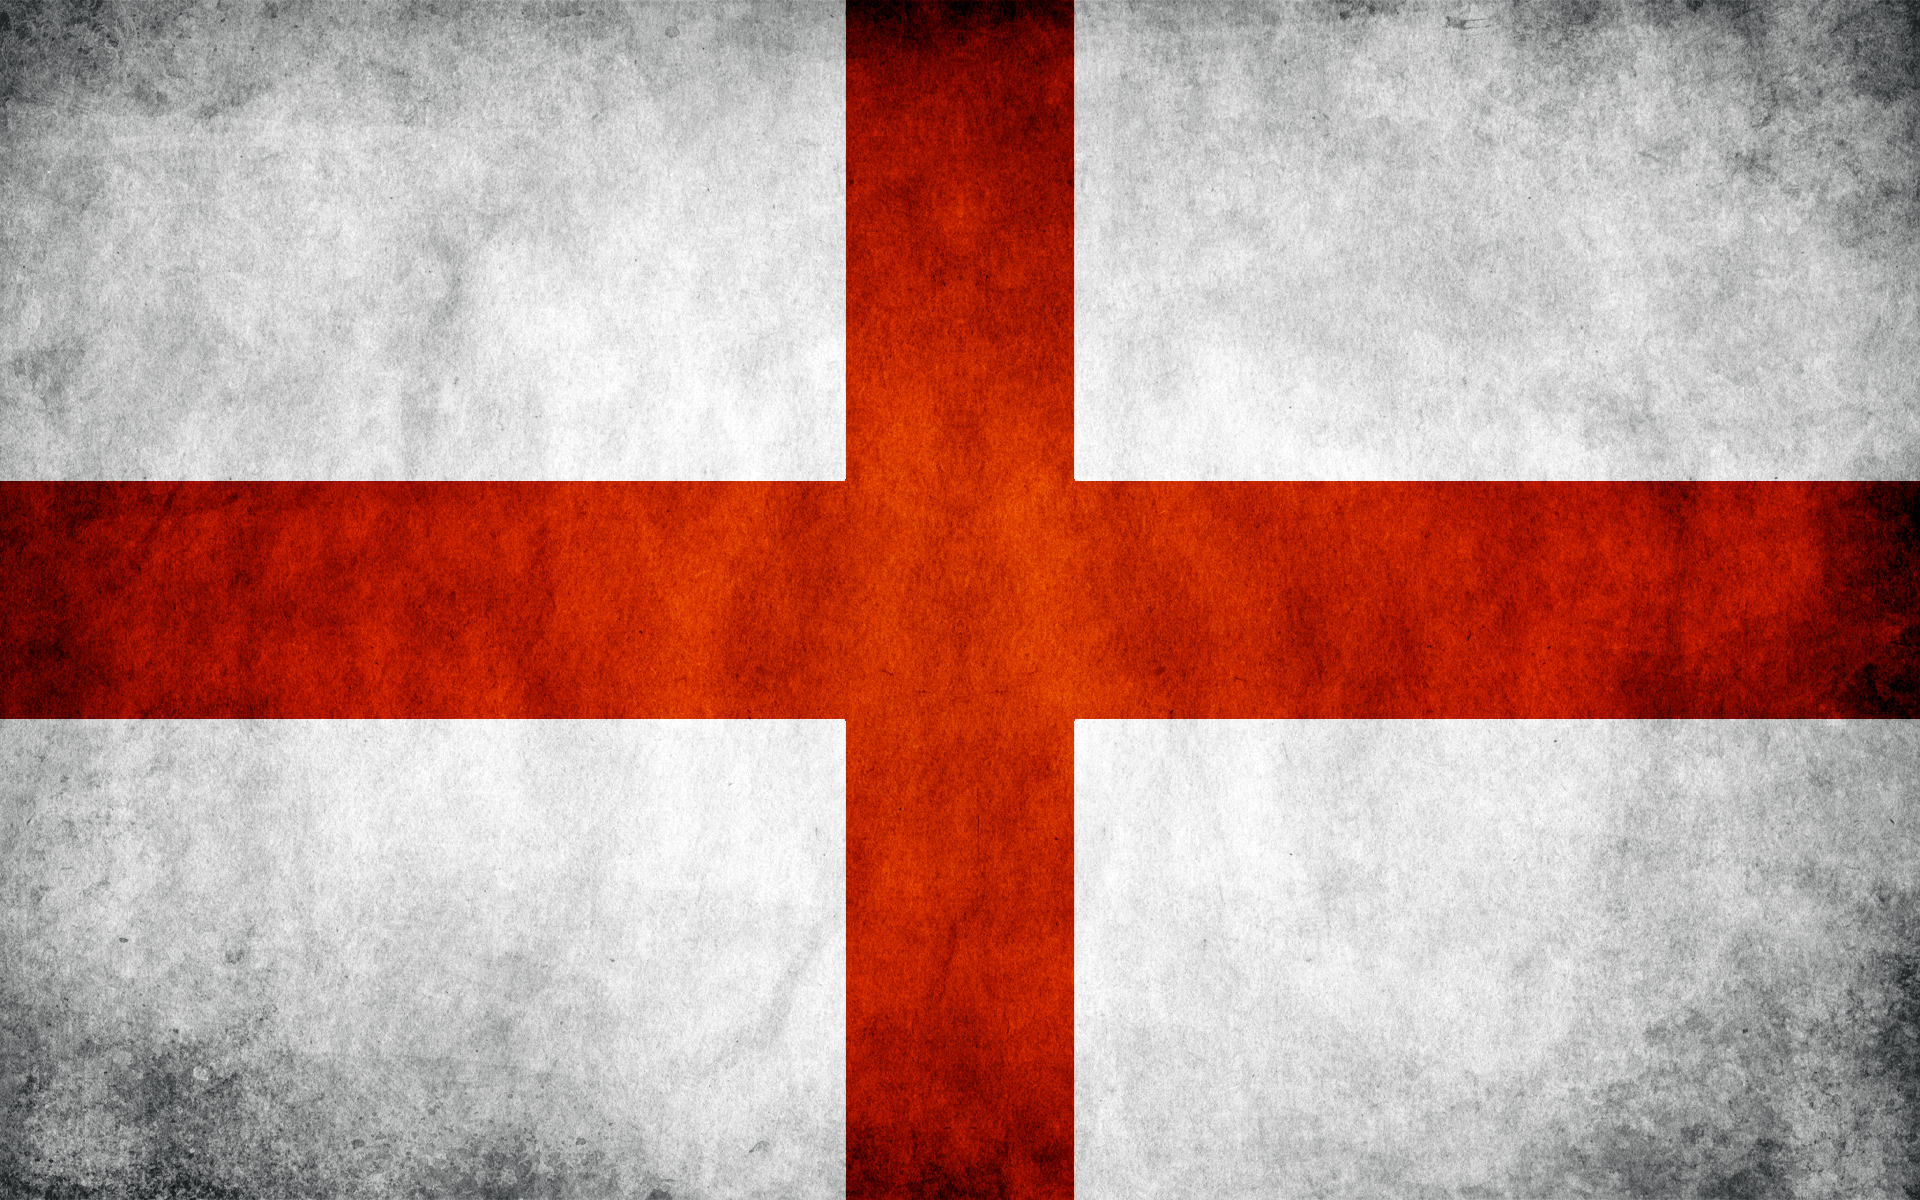 england flag grunge wallpaper background grunges continuacao 1920x1200